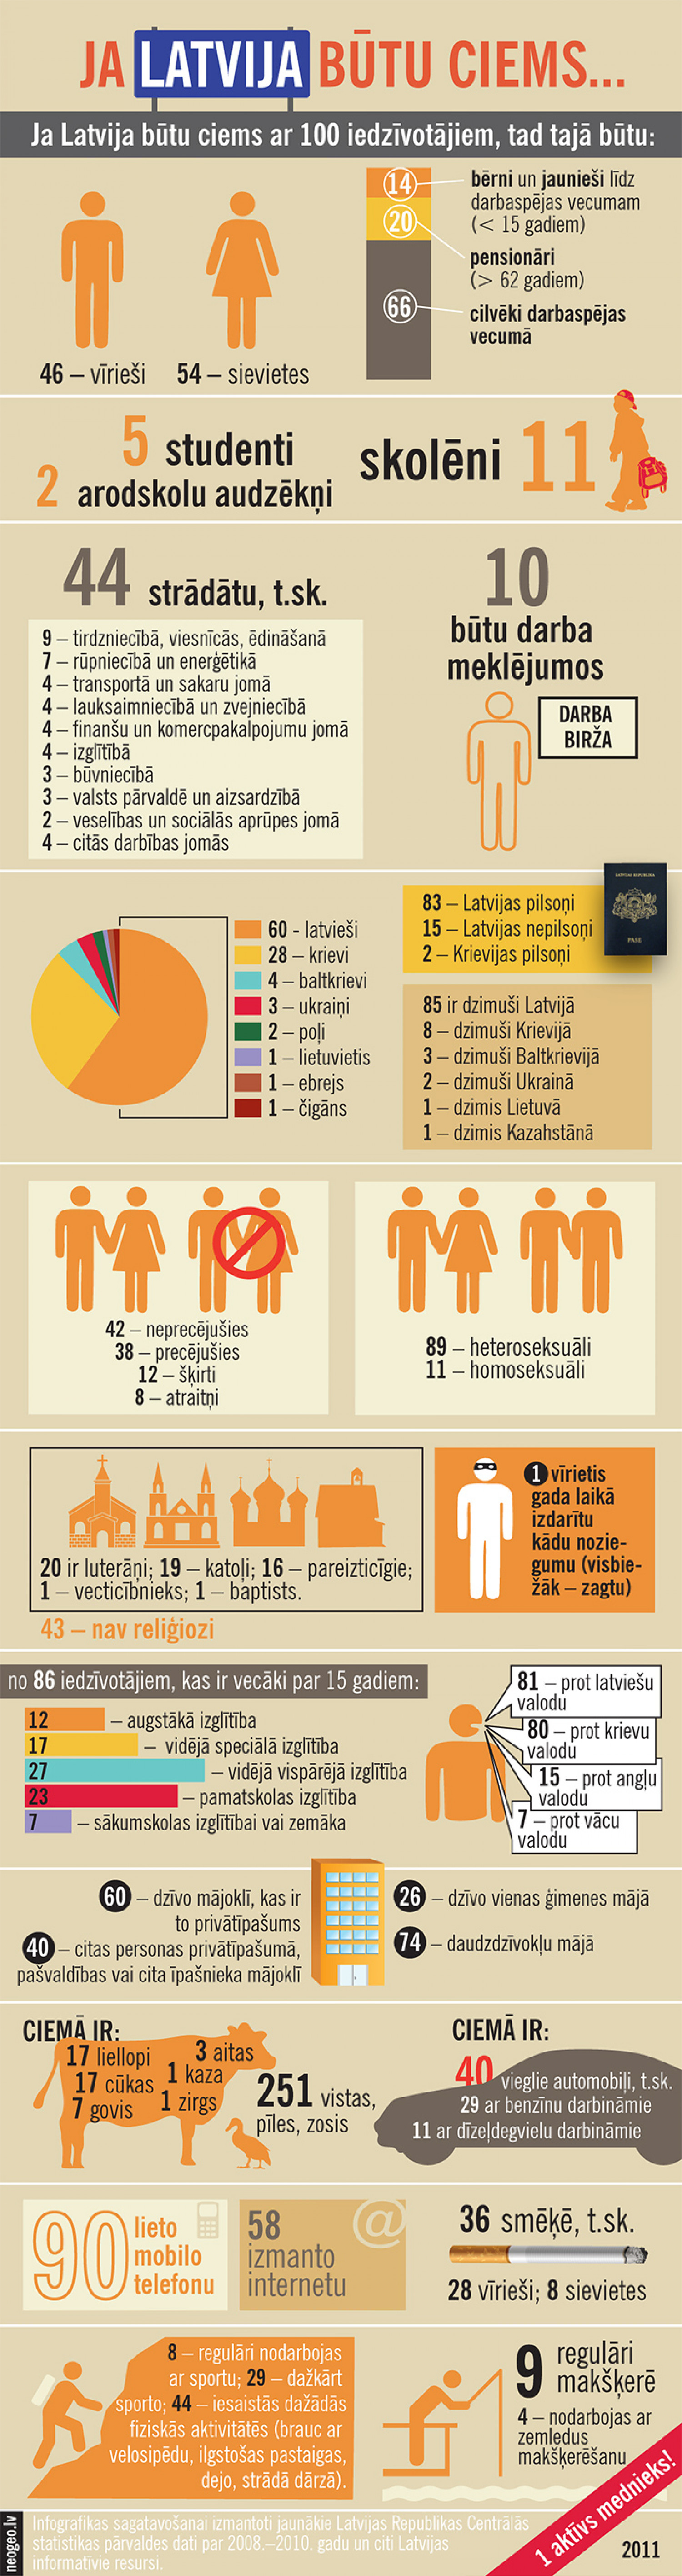 Latvia as a village of hundred people Infographic